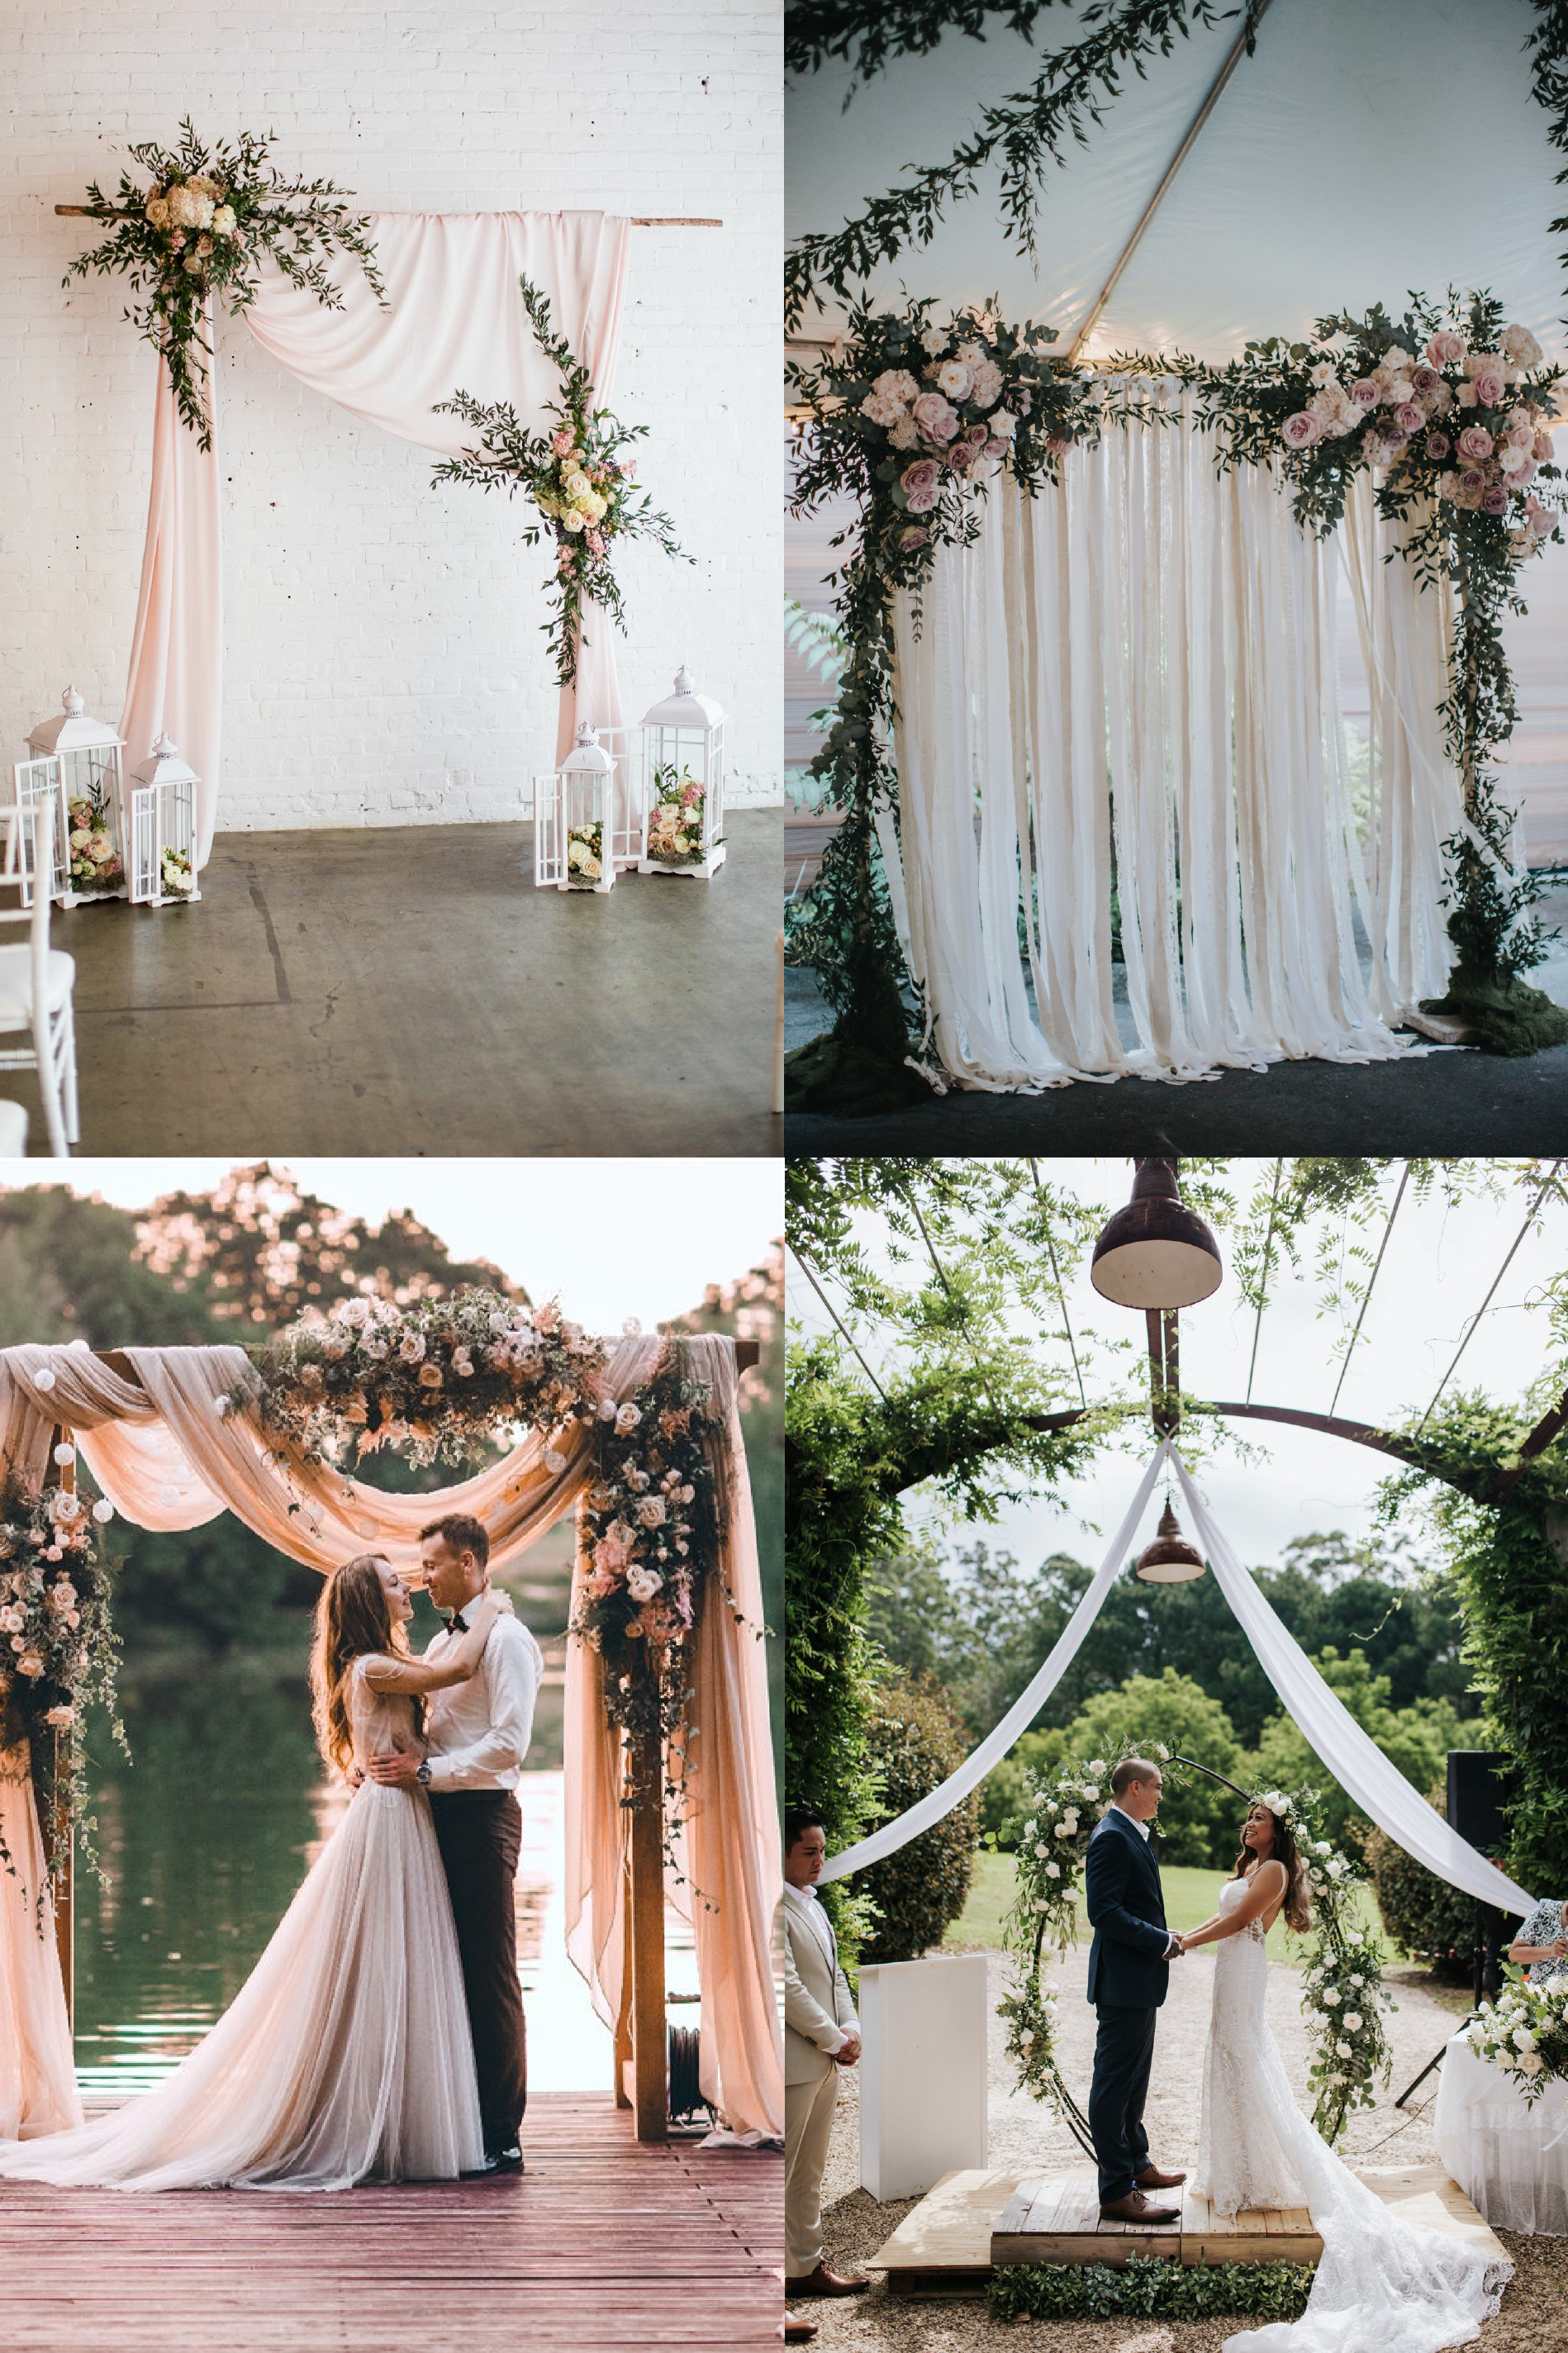 FROM CLOCKWISE, FROM TOP LEFT: Photo source  Pinterest , Photo by  Forever Photography , Floral Design by  Lime Tree Bower  and photo by  Samantha heather , Photo source by  Pinterest .